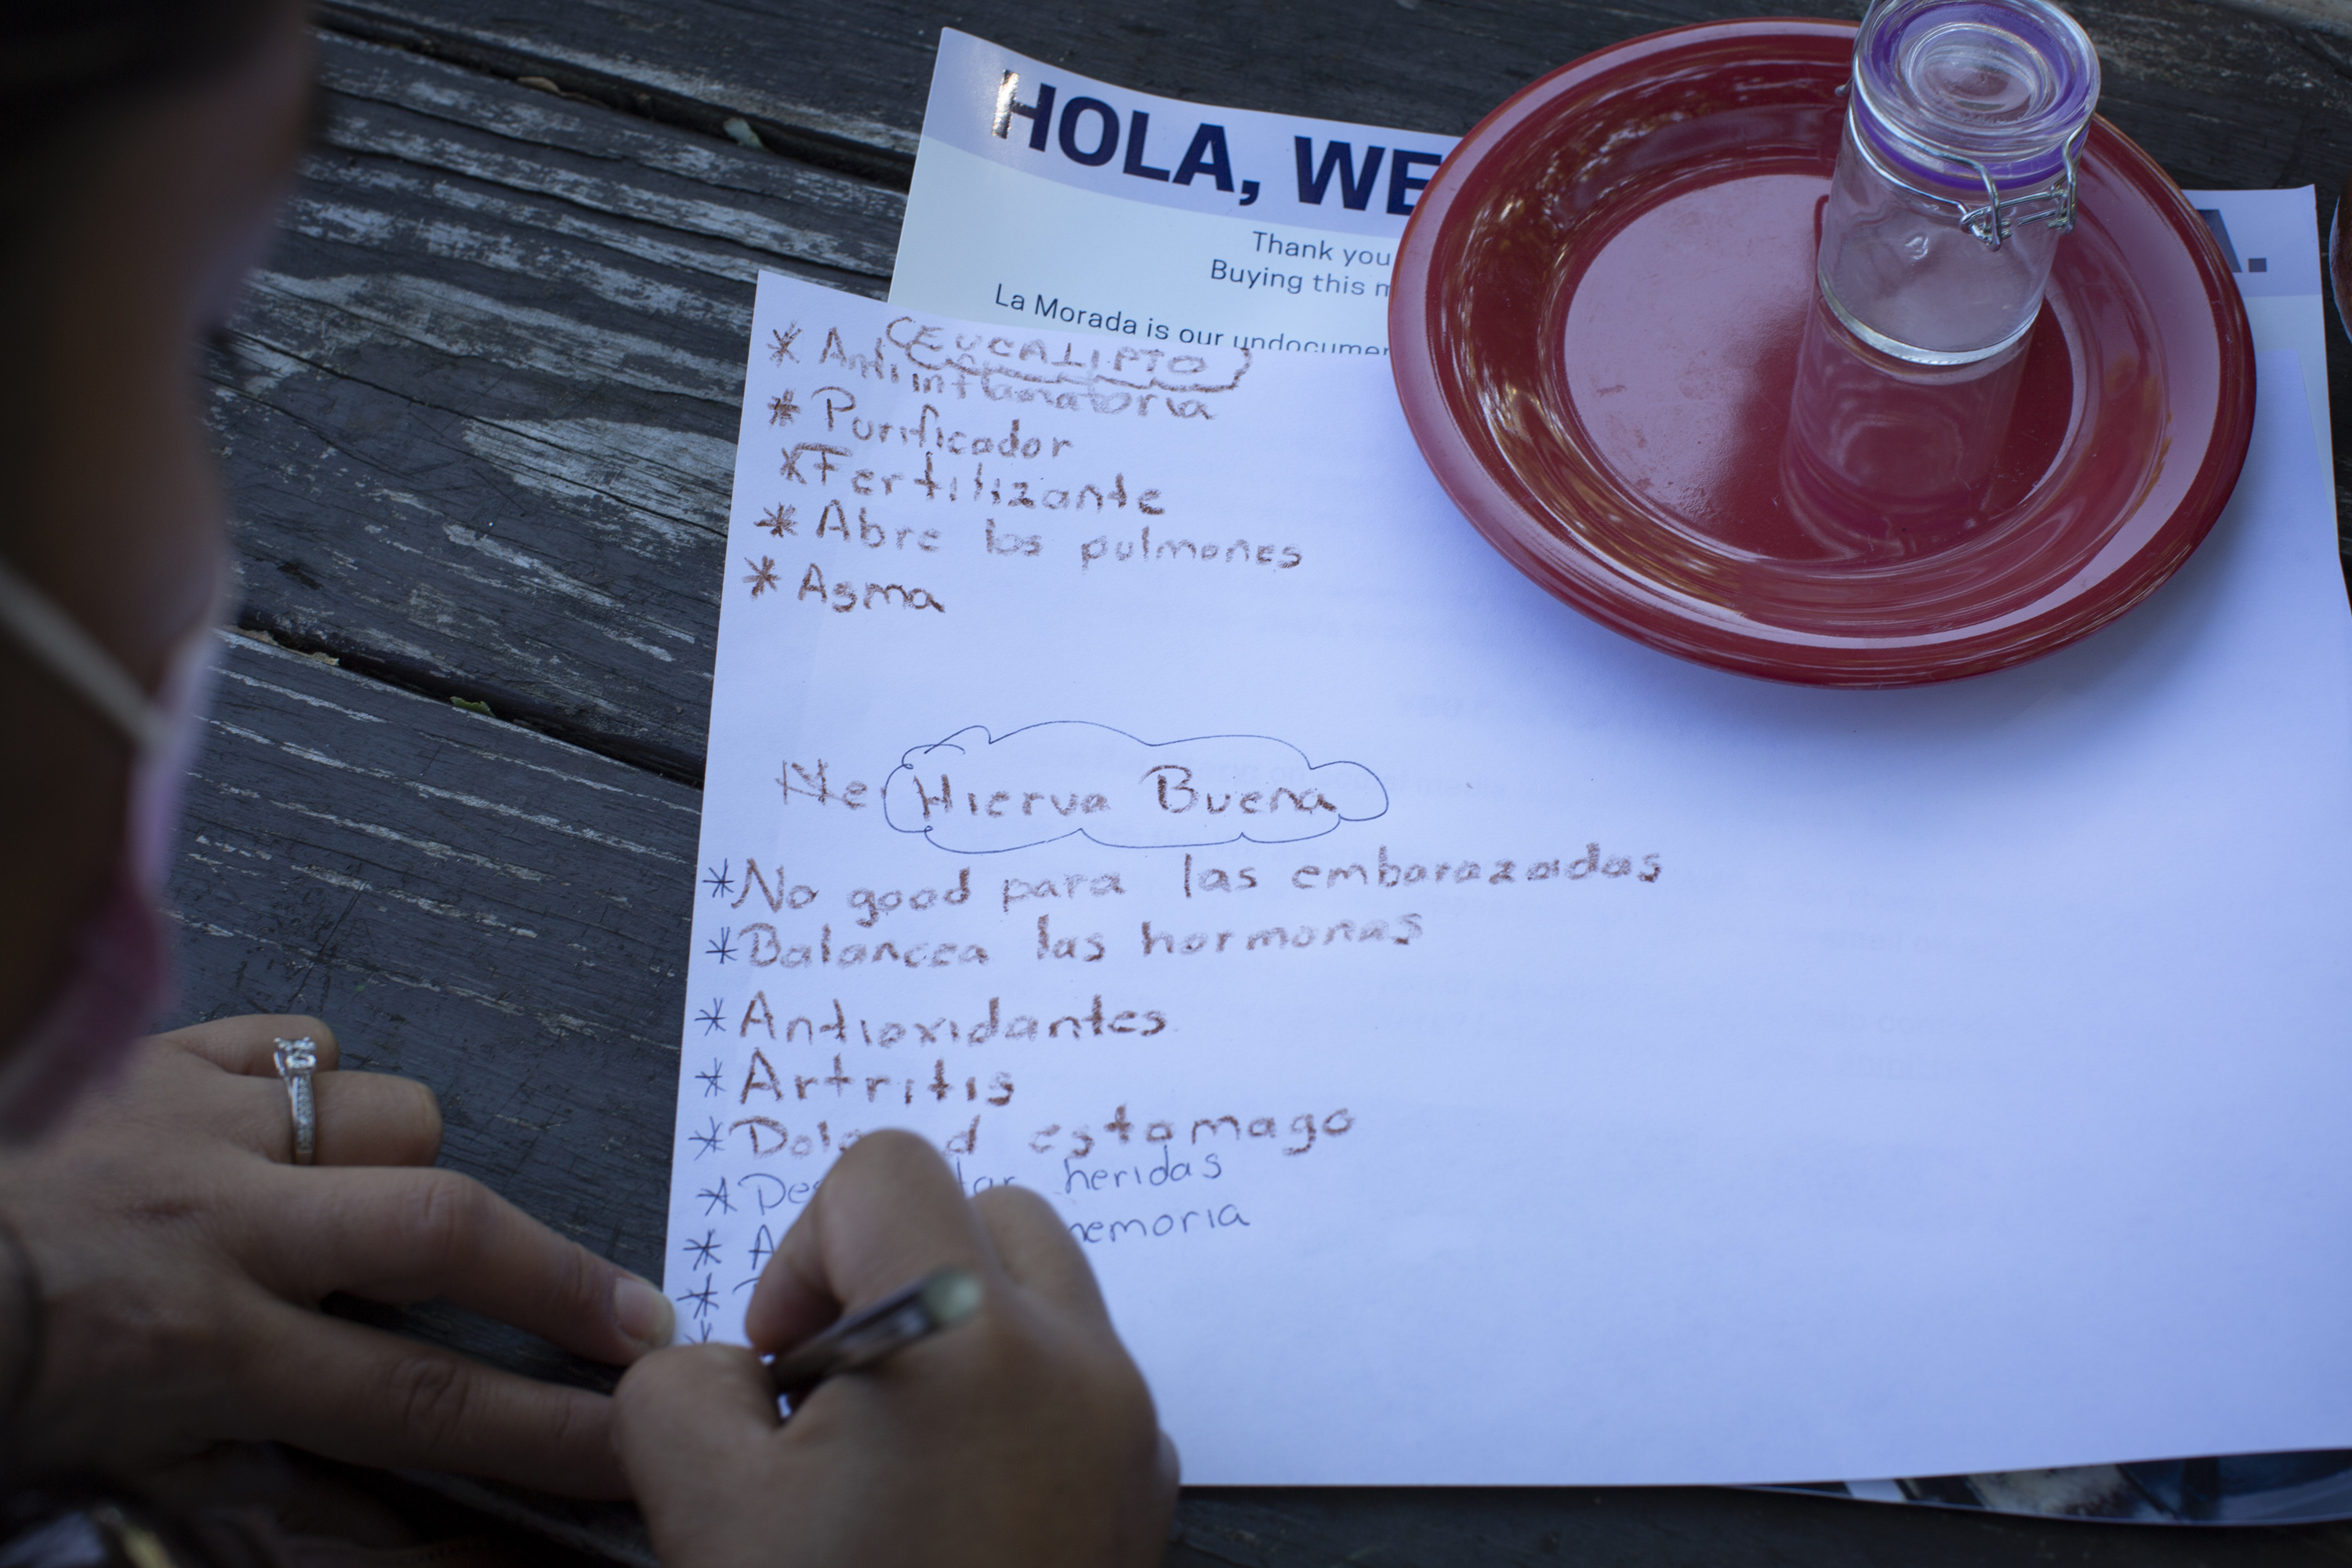 An over-the-shoulder view of a participant with a pink mask taking notes in Spanish about the properties and uses of eucalyptus and spearmint. In the background, on a wooden table, there is a red plastic plate with a glass jar on it. Underneath the piece of paper in which the participant is writing there is a flyer with information about La morada restaurant and its activities during the Covid-19 pandemic. Photo by Cinthya Santos-Briones for Brewing Memories workshop, October 3, 2020.